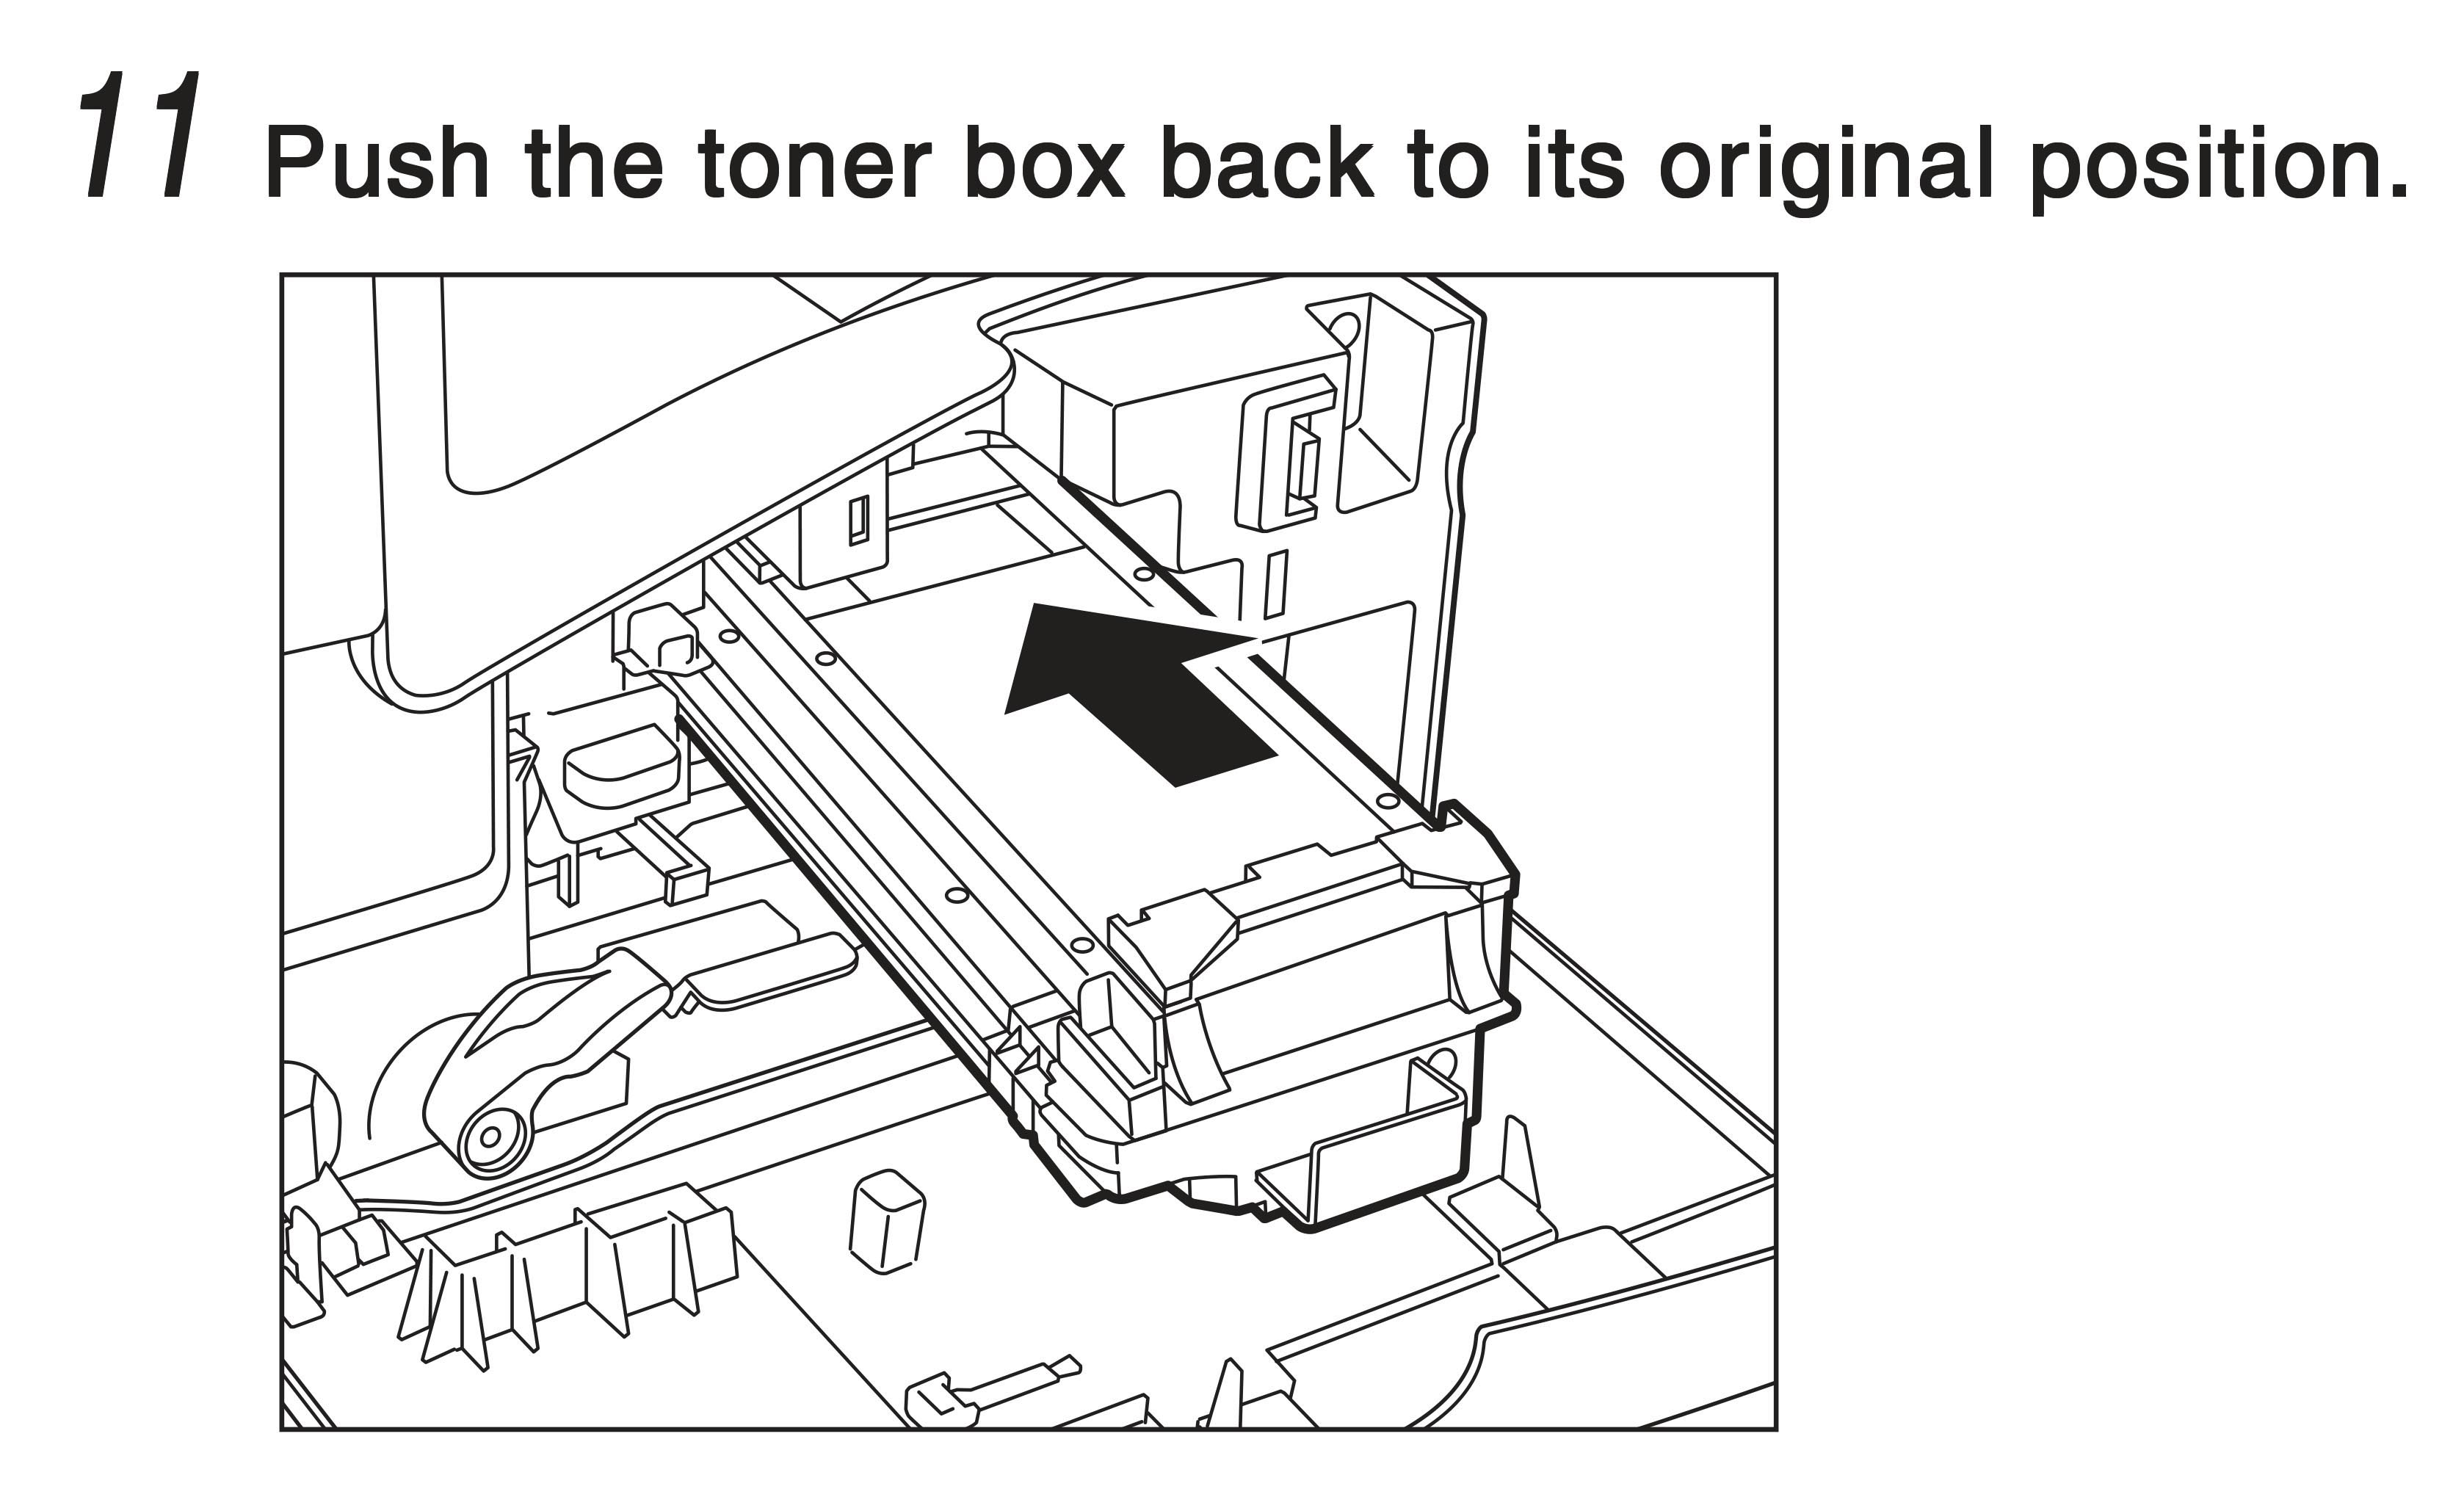 11. Push the toner box back to its original position.